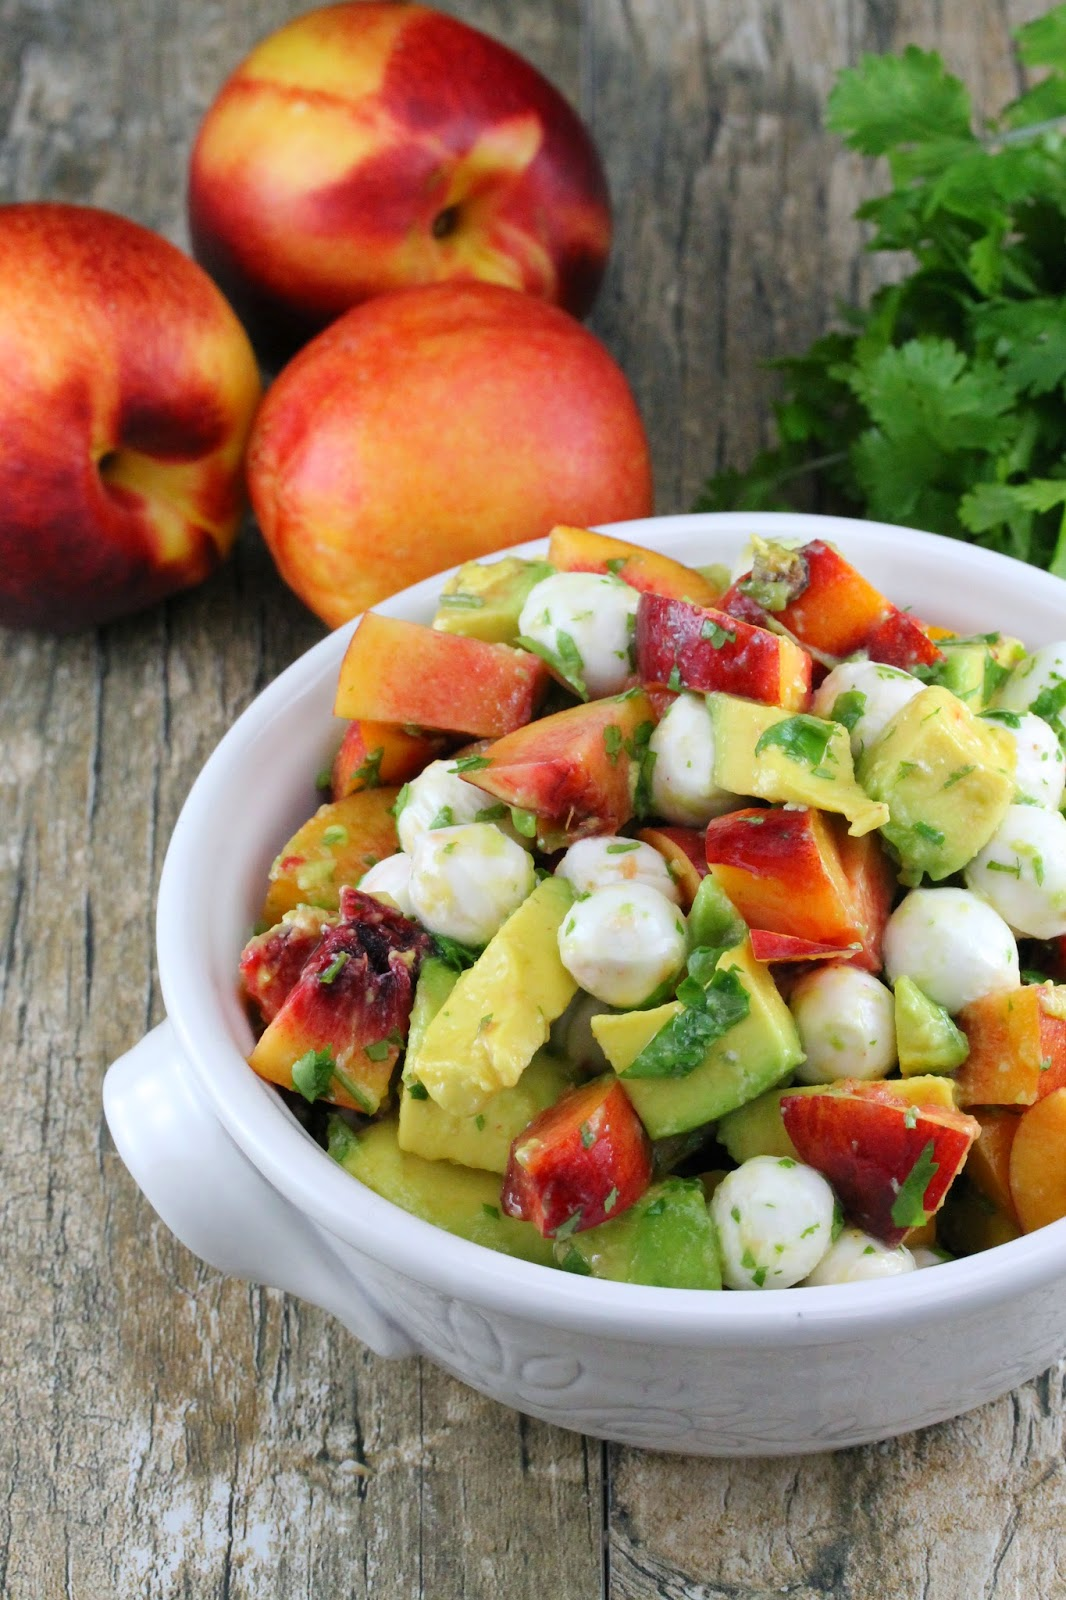 Nectarine and Avocado Fruit Salad with the sweetness of fresh nectarine, the creamy texture of avocado and fresh mozzarella and tossed with lime juice and cilantro